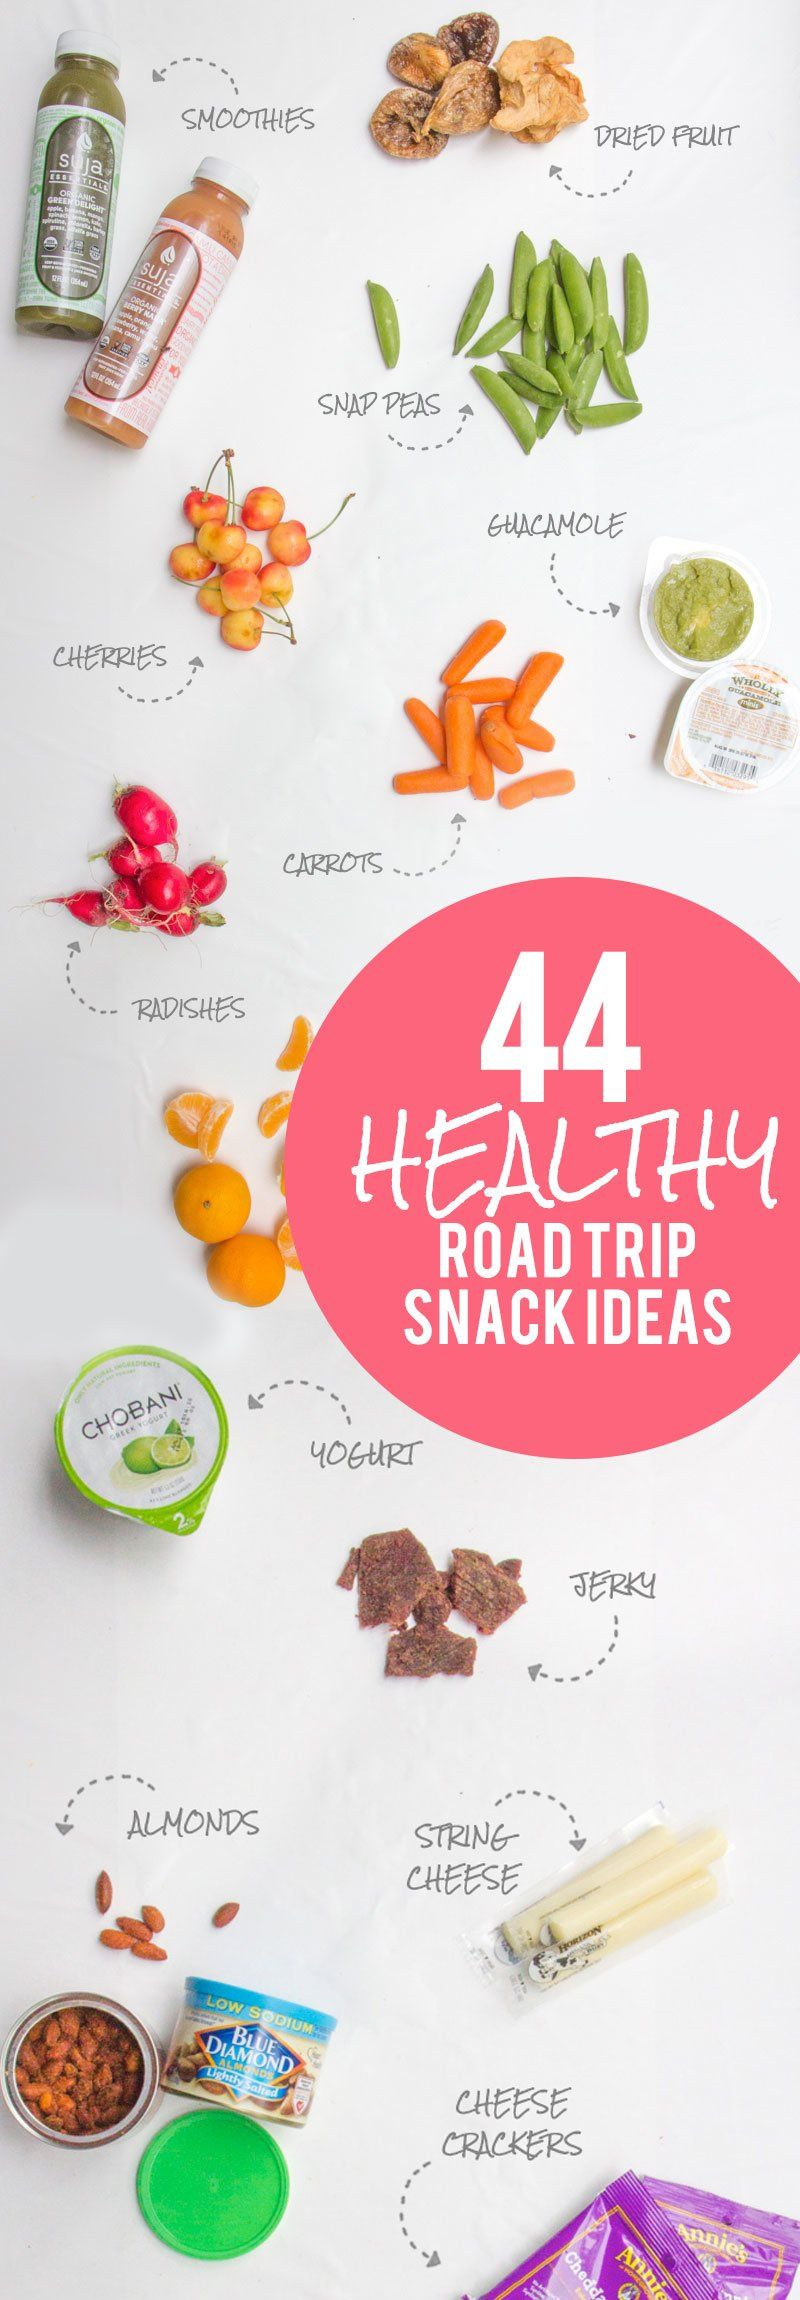 44 Healthy Road Trip Snack Ideas images